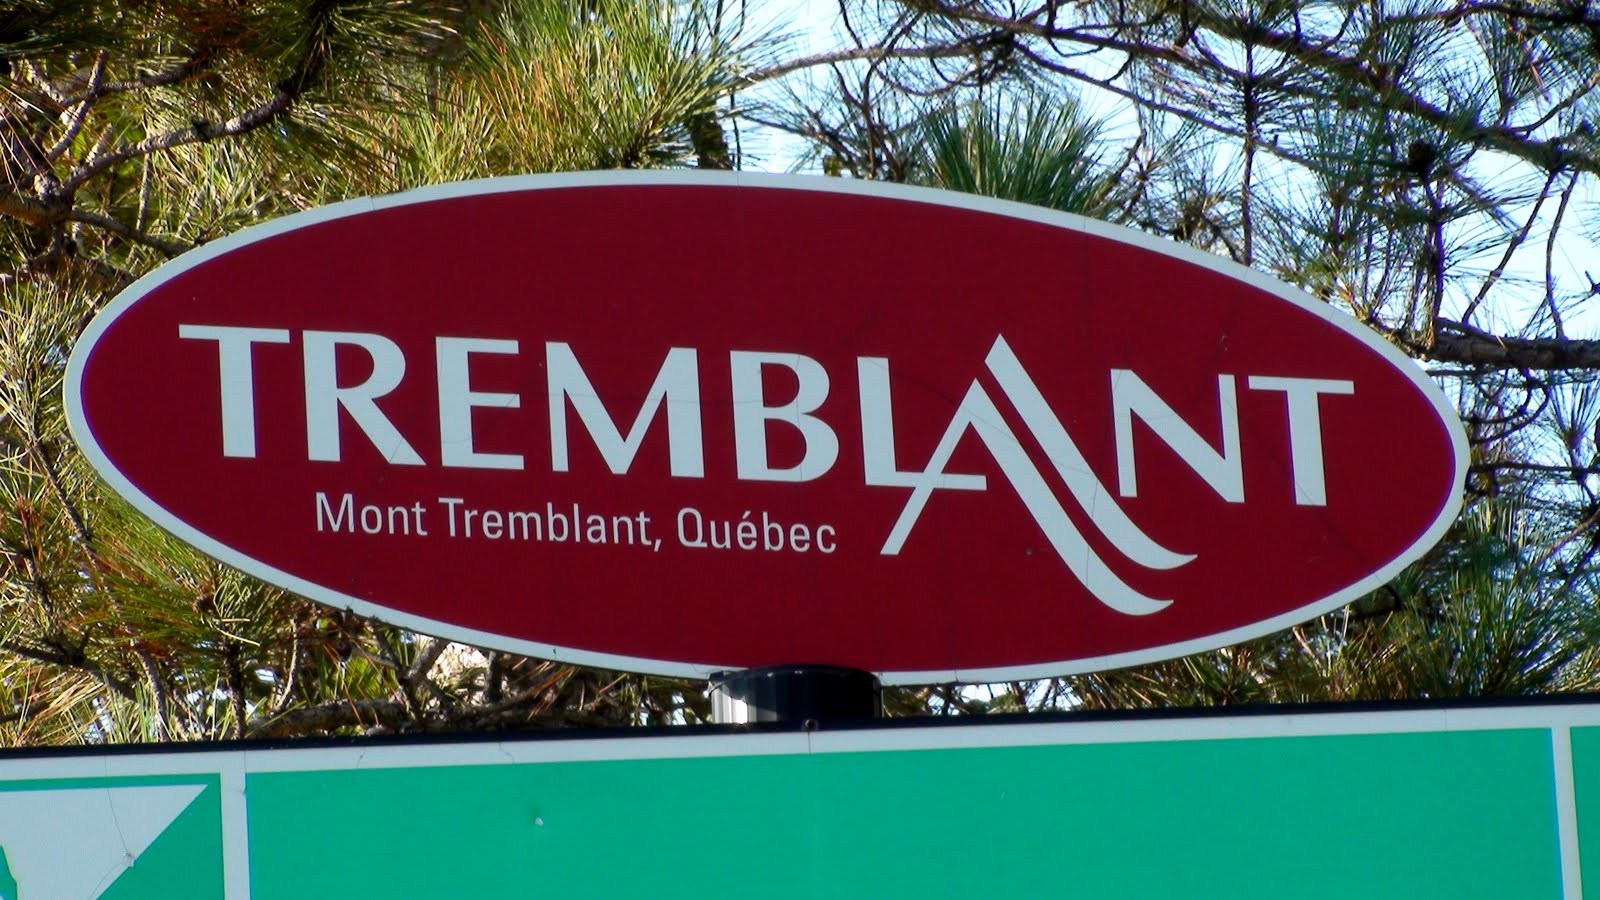 sign of Mont Tremblant, Quebec